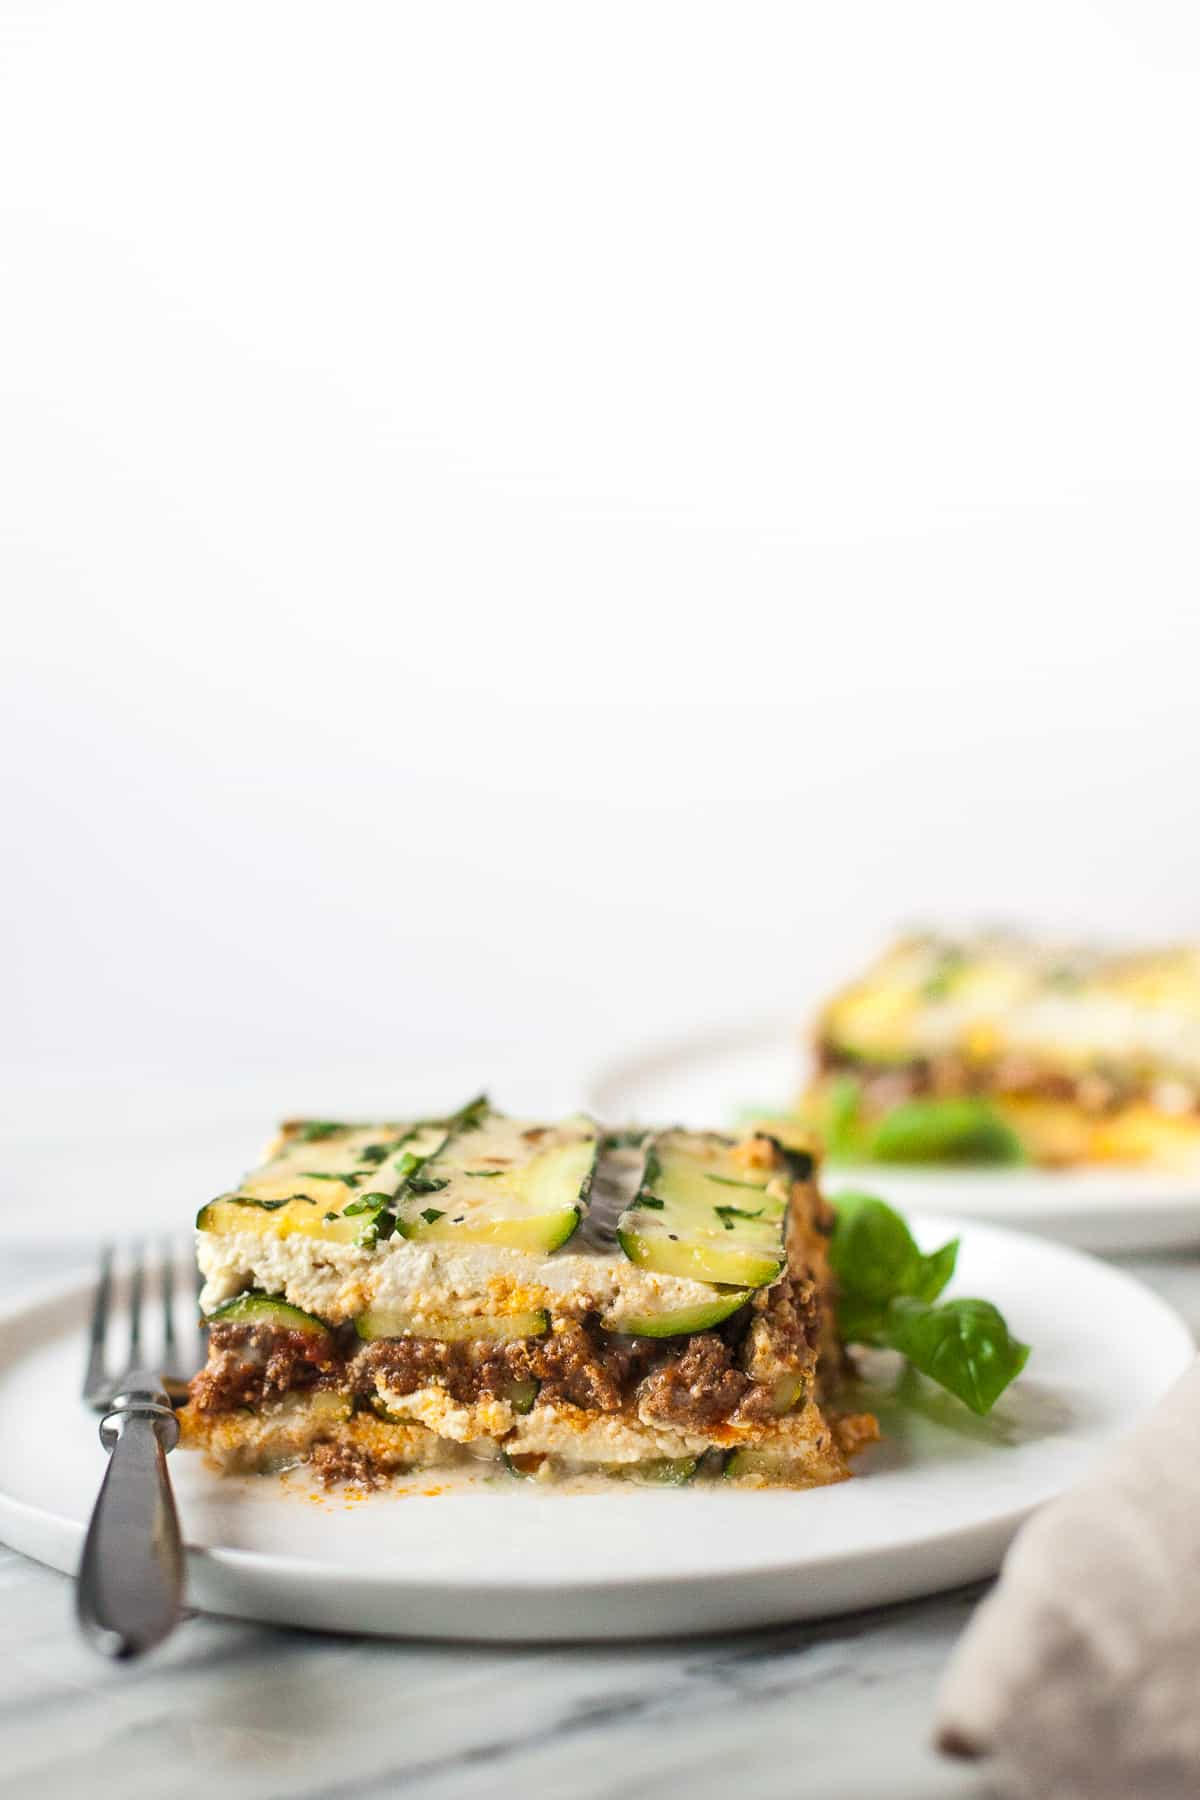 Craving Italian comfort food but avoiding grains and cheese? This Paleo zucchini lasagna is for you.